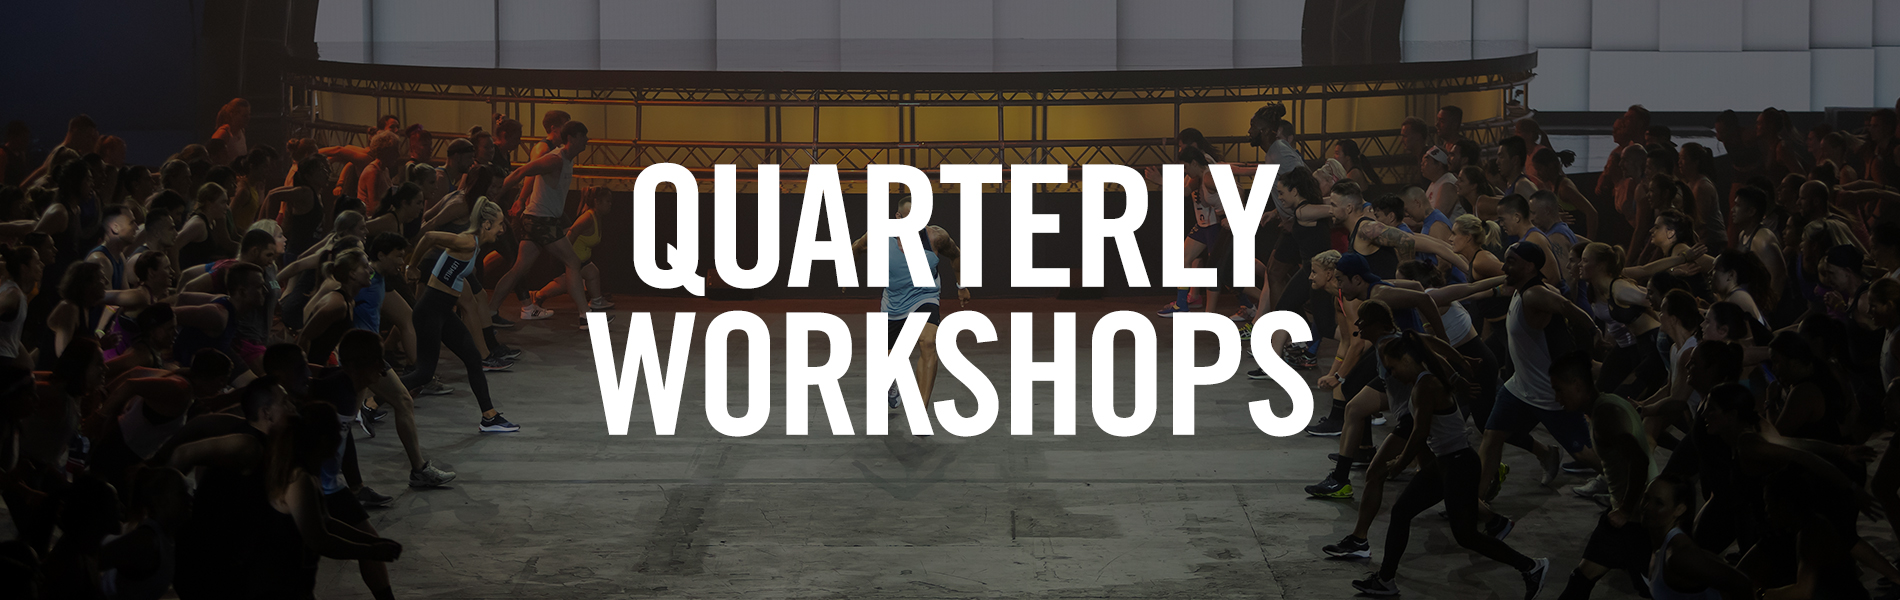 Quarterly Workshop Header Image